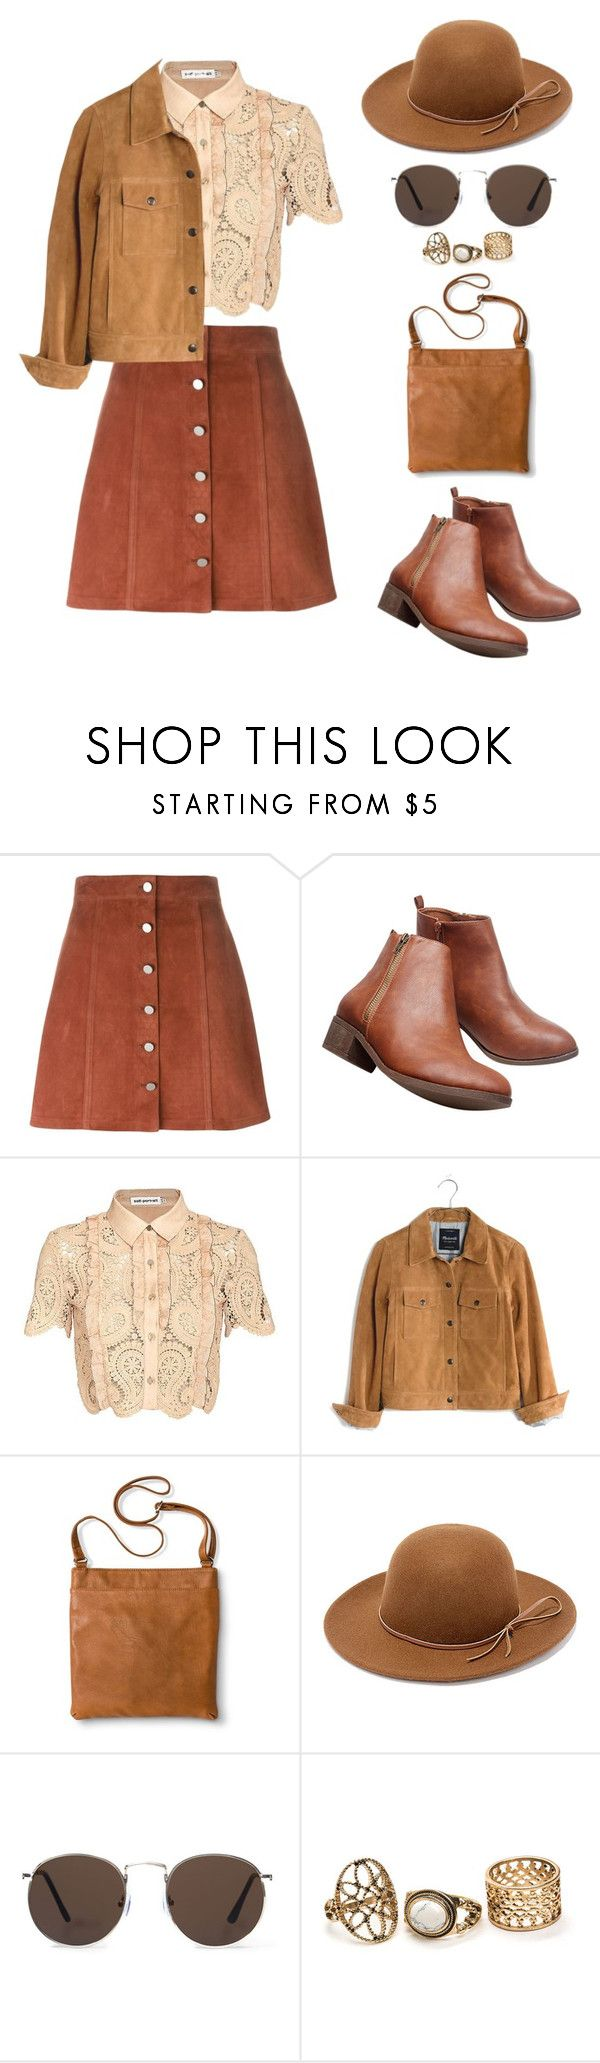 """Geen titel #413"" by melissa-klink ❤ liked on Polyvore featuring Theory, Wet Seal, self-portrait, Madewell, Merona, Rhythm. and MANGO"